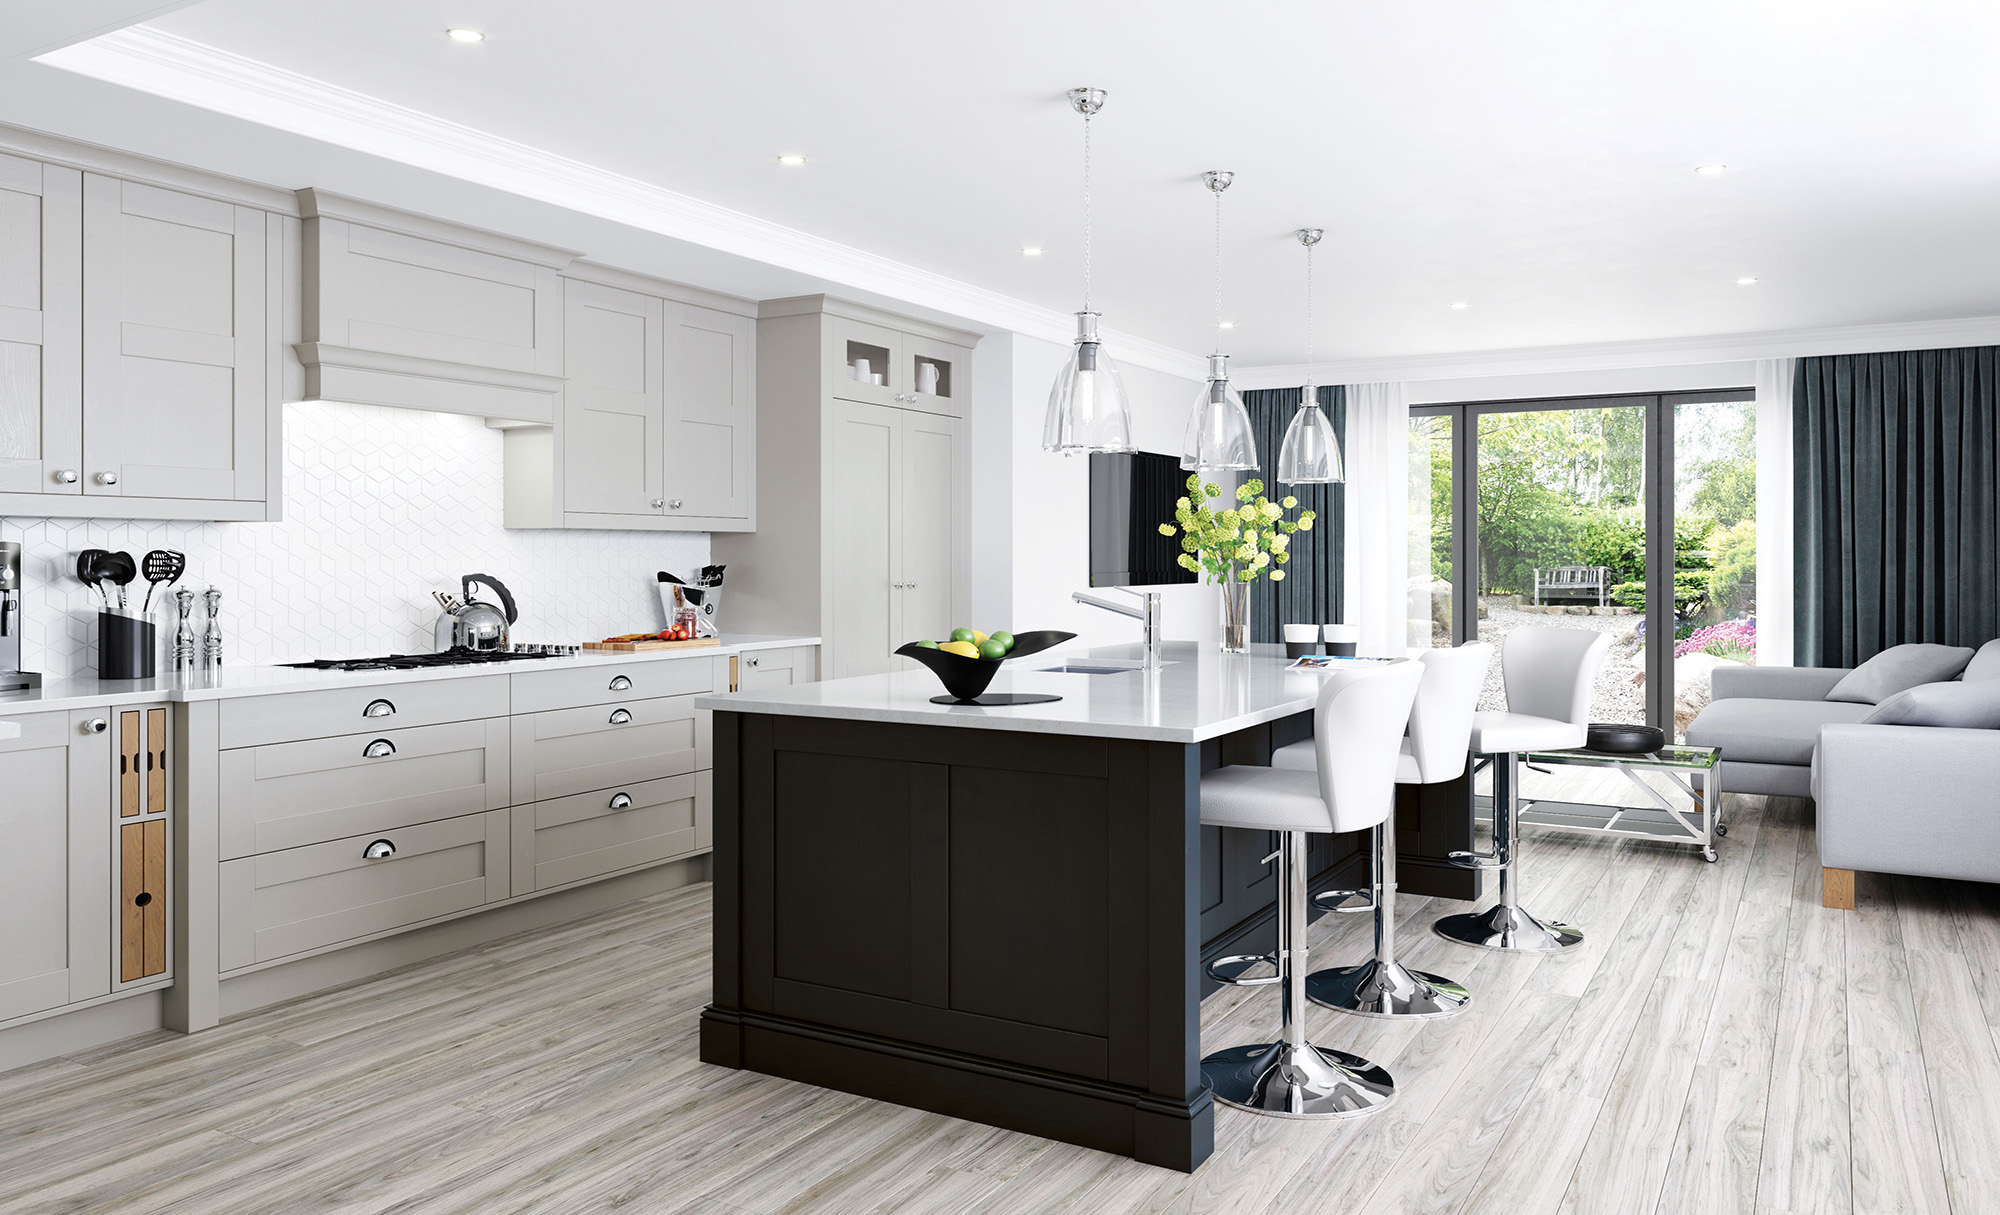 Armagh Kitchens